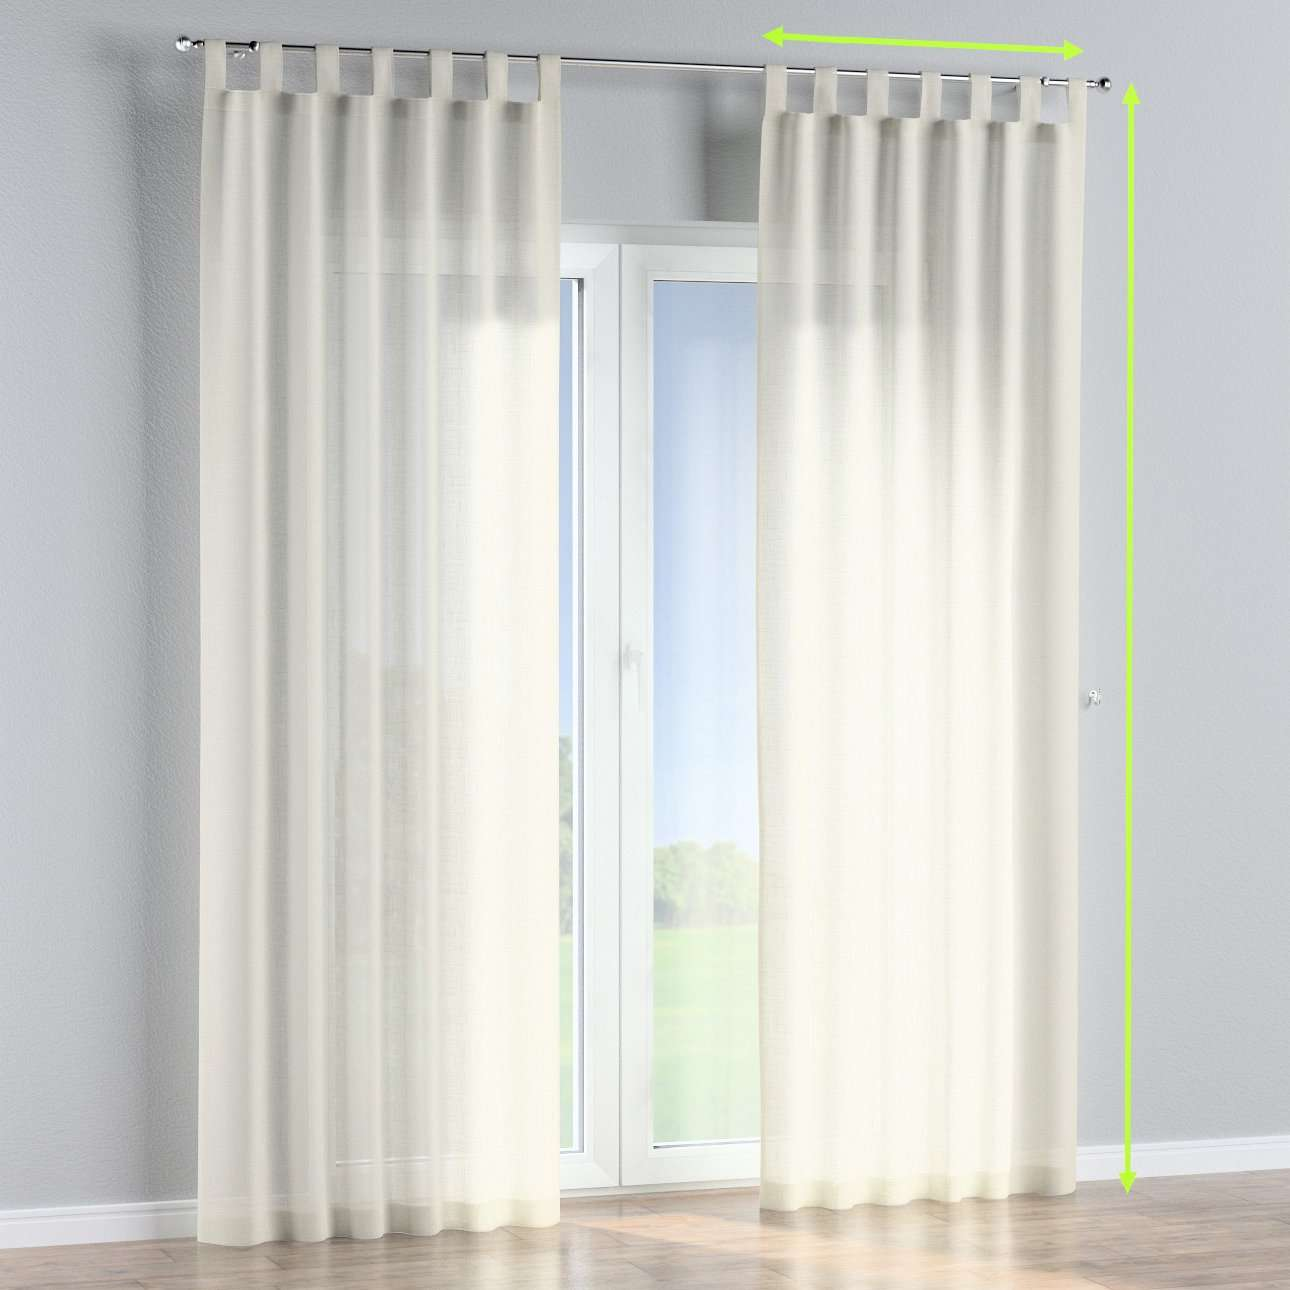 Tab top curtains in collection Romantica, fabric: 128-88